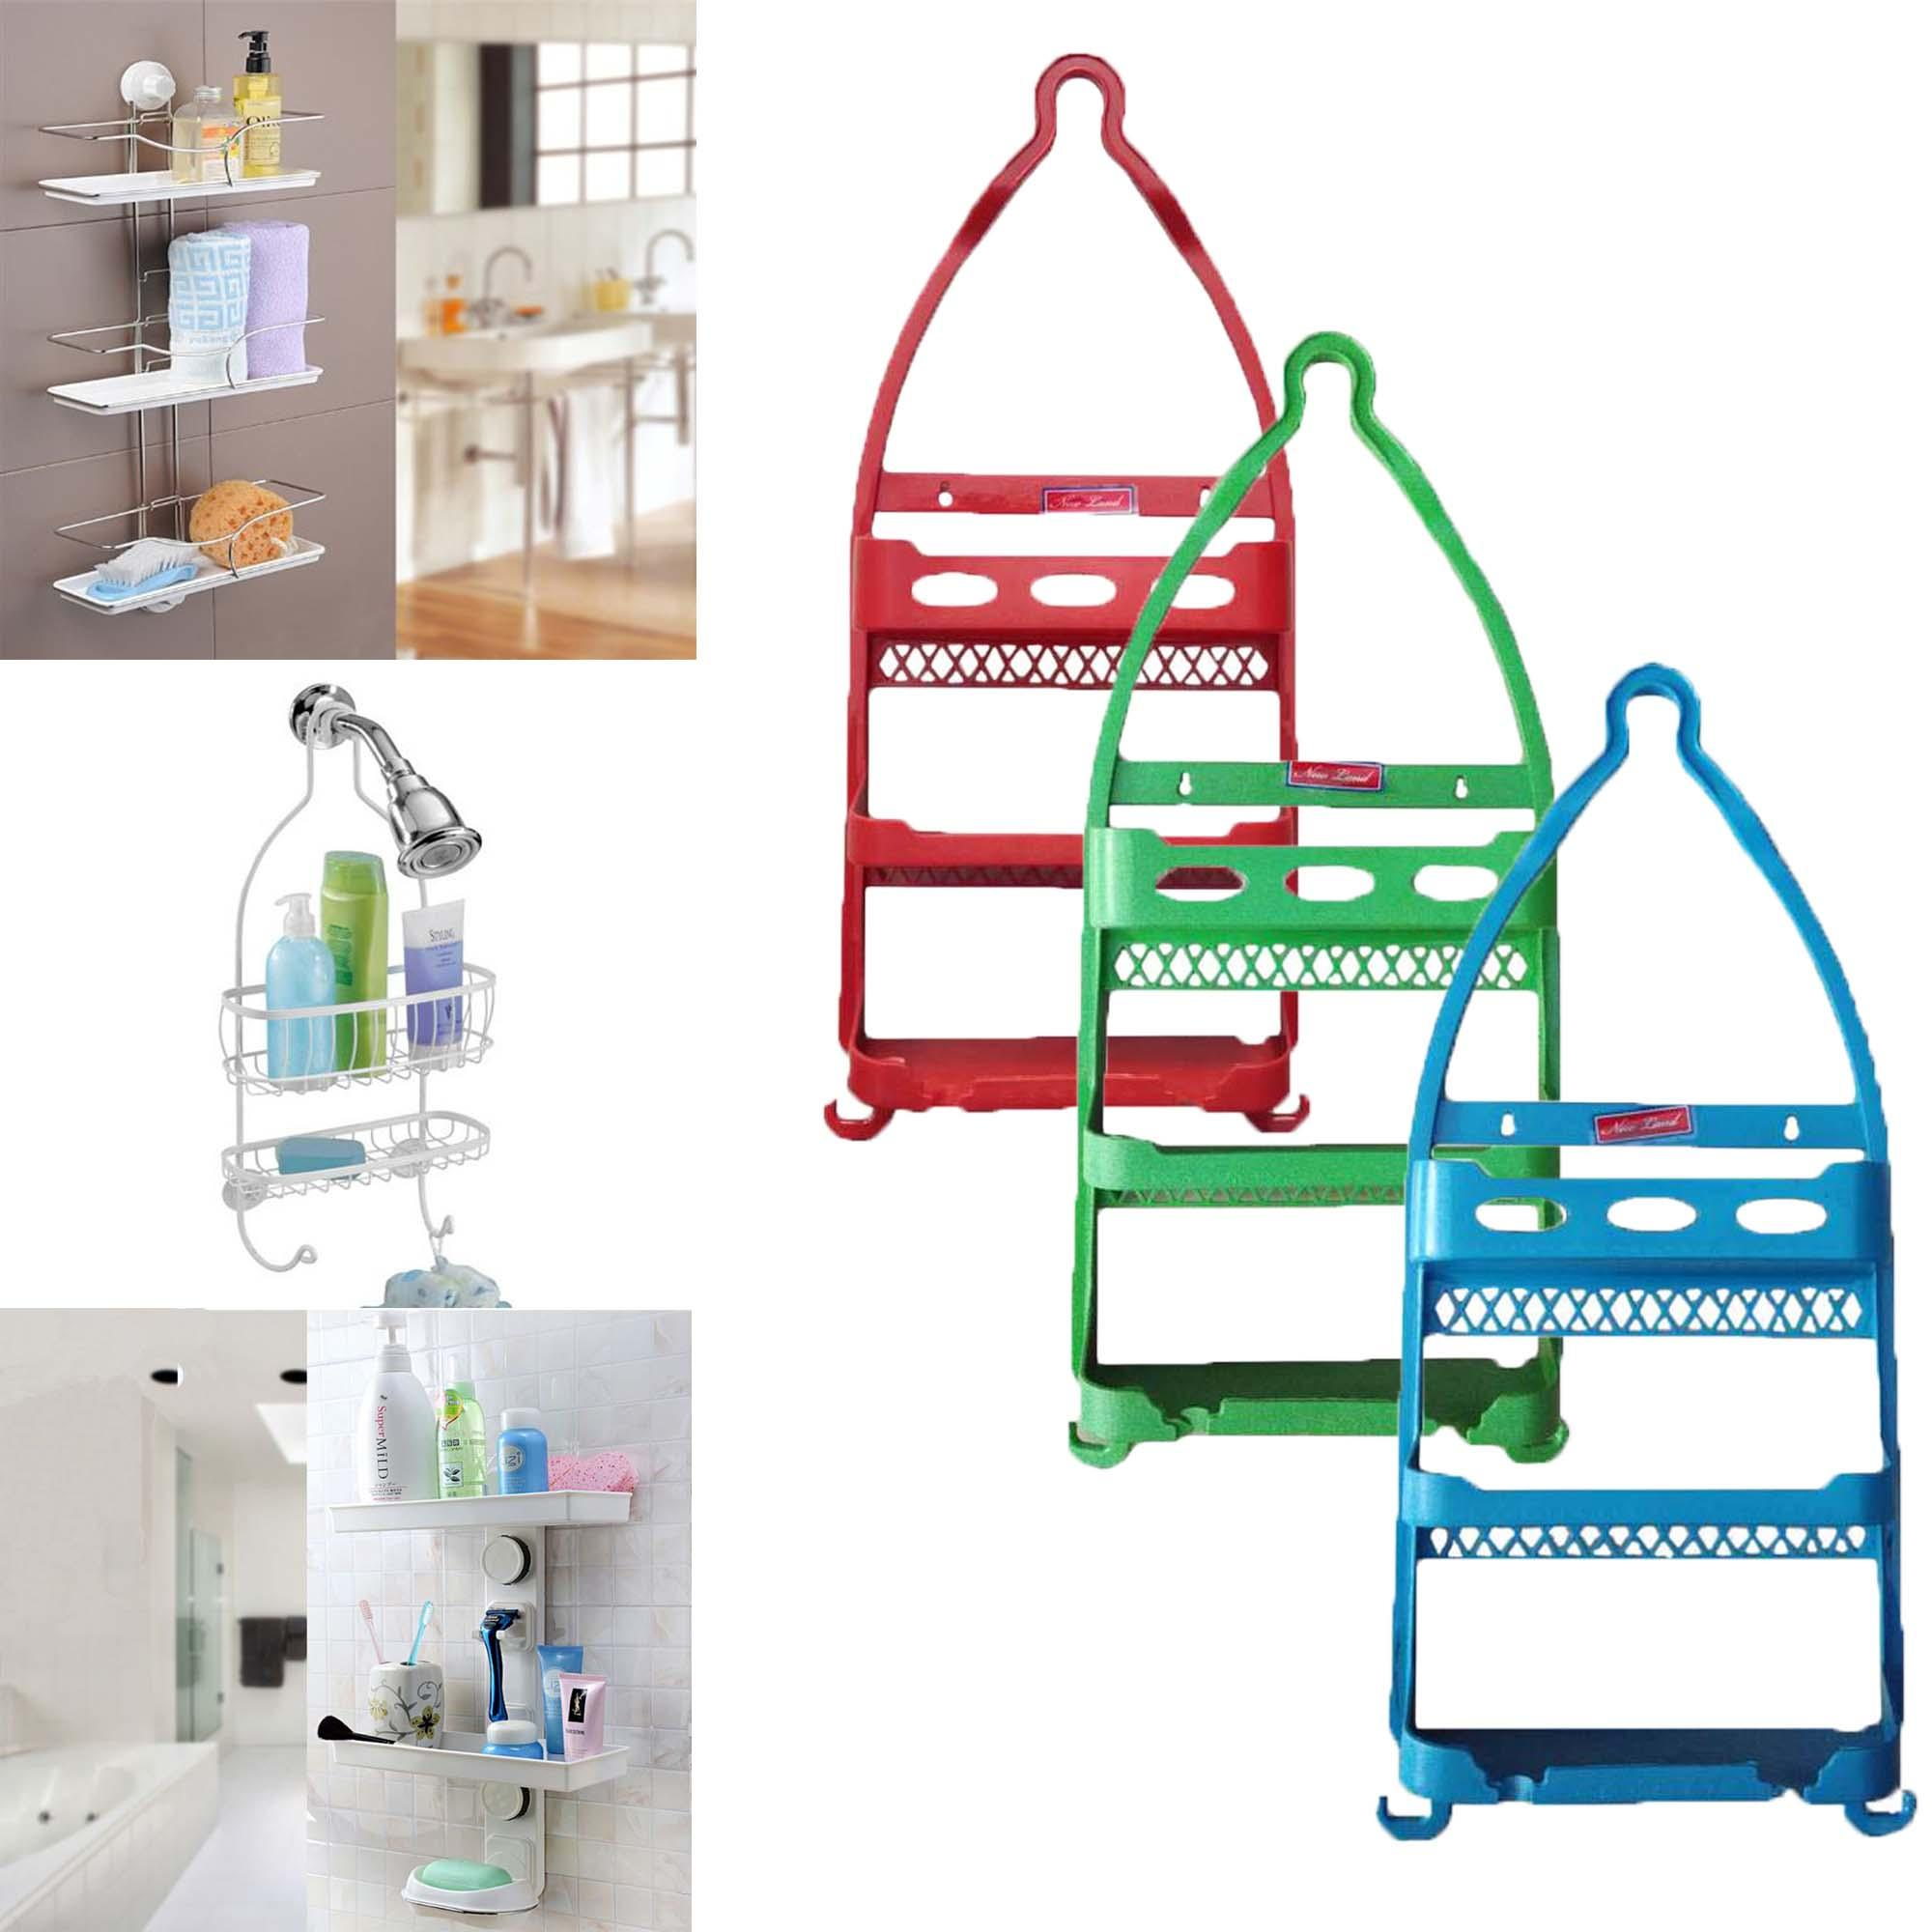 Buy 2 Take 1 3 Layer Plastic Bathroom Shower Caddy Plastic Organizer